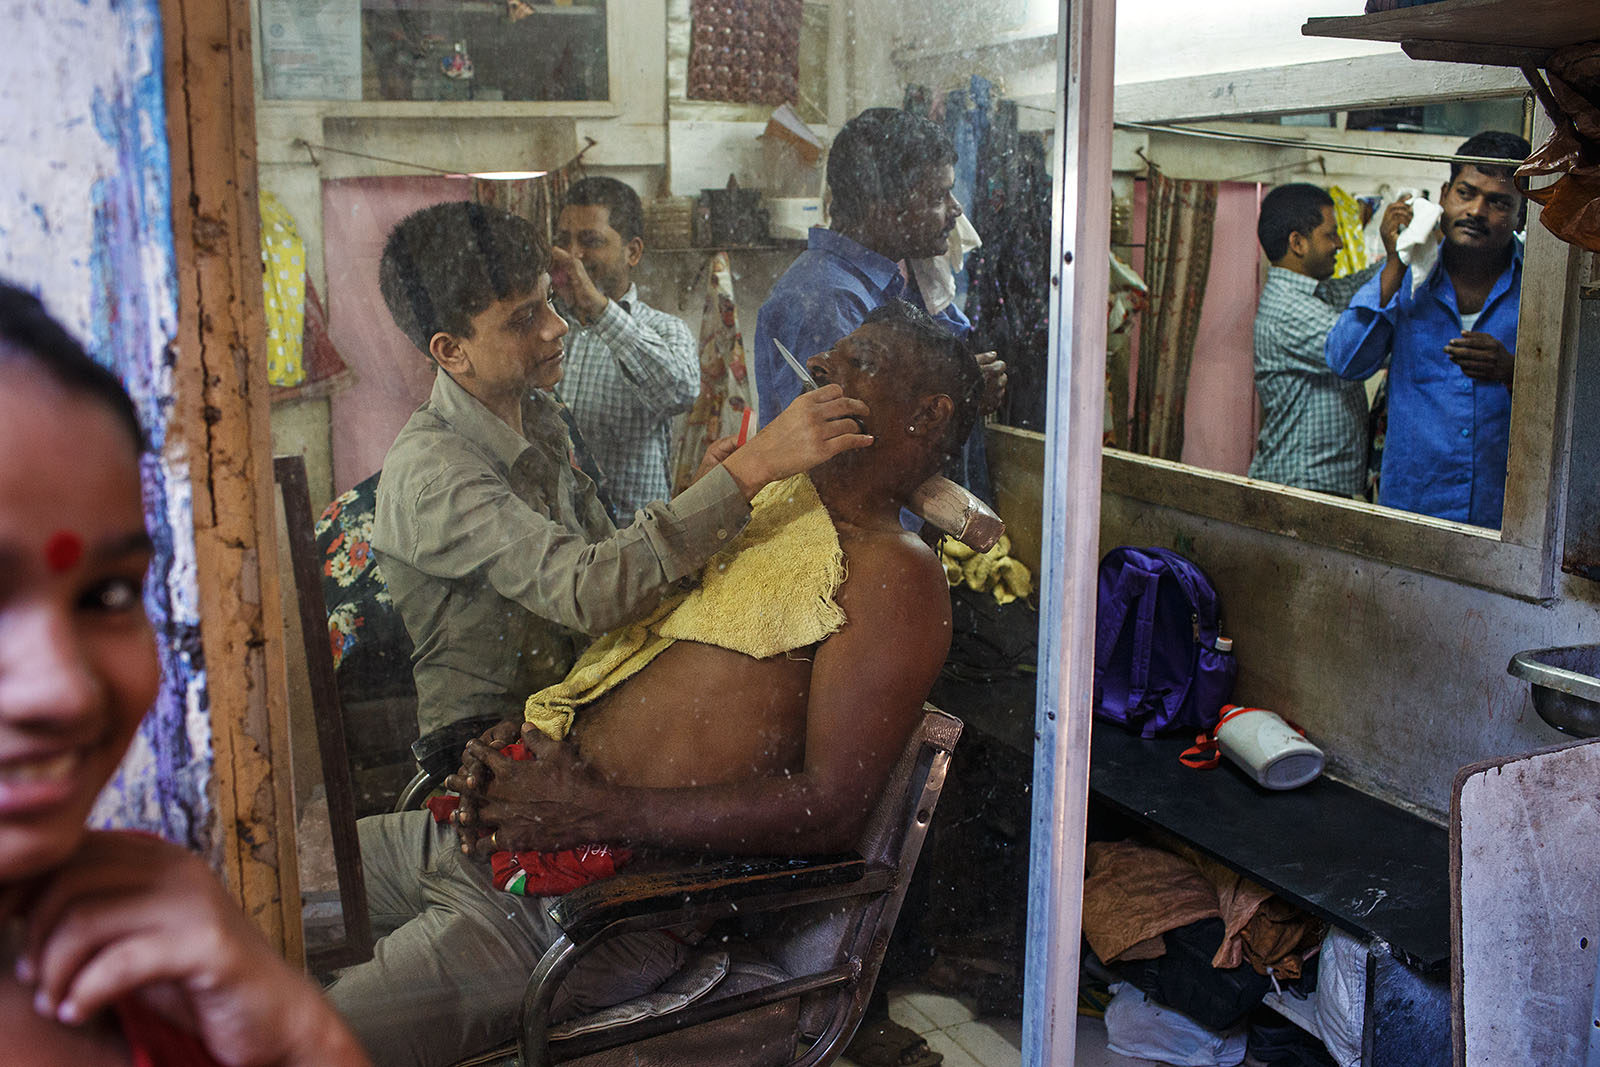 At the barber's - Mumbai, India